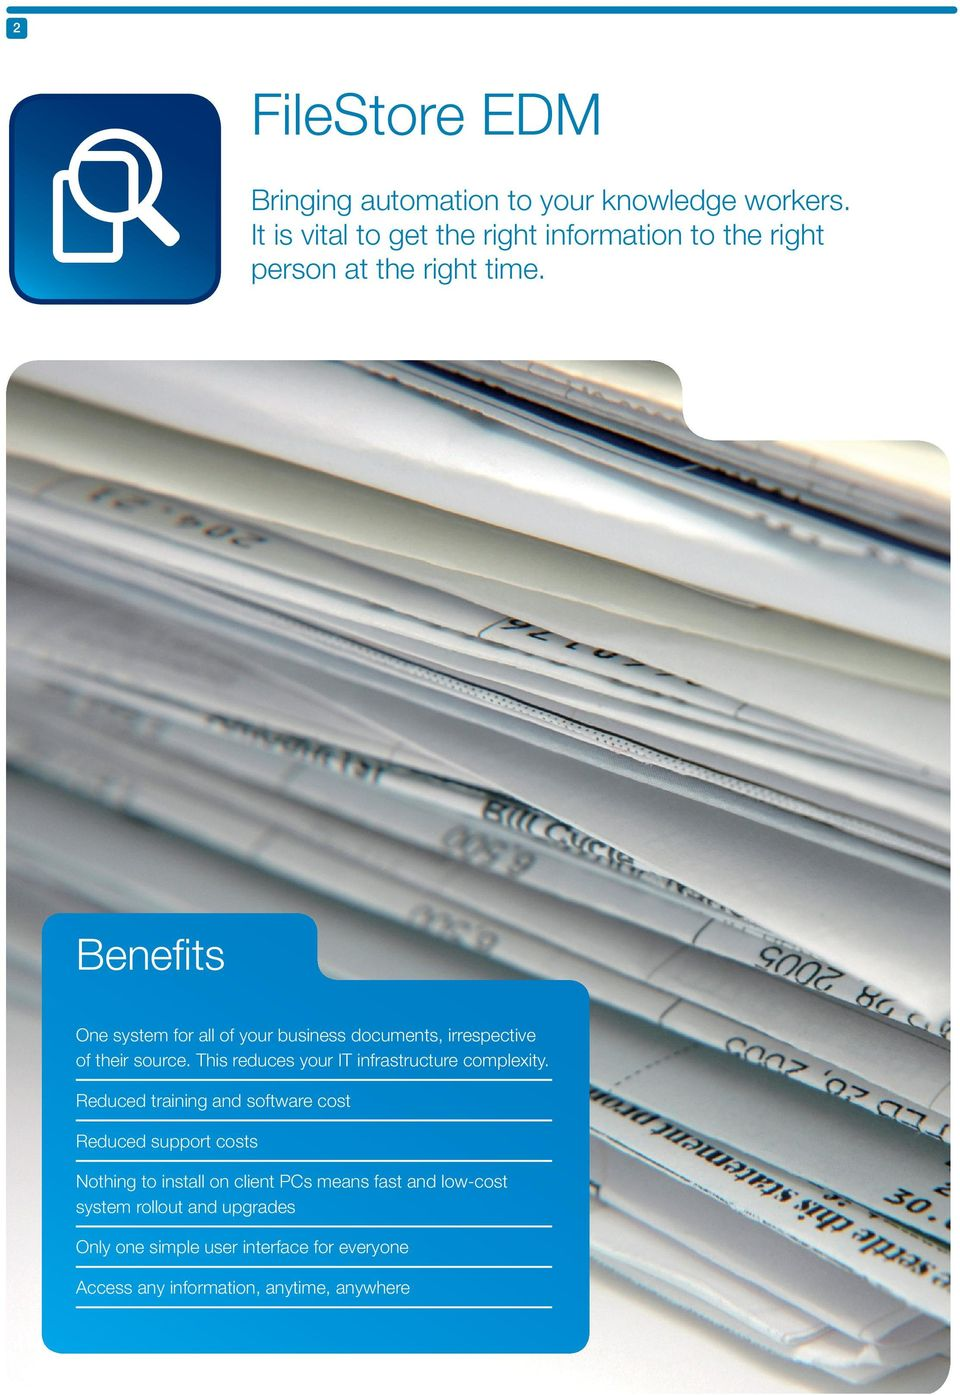 Benefits One system for all of your business documents, irrespective of their source.